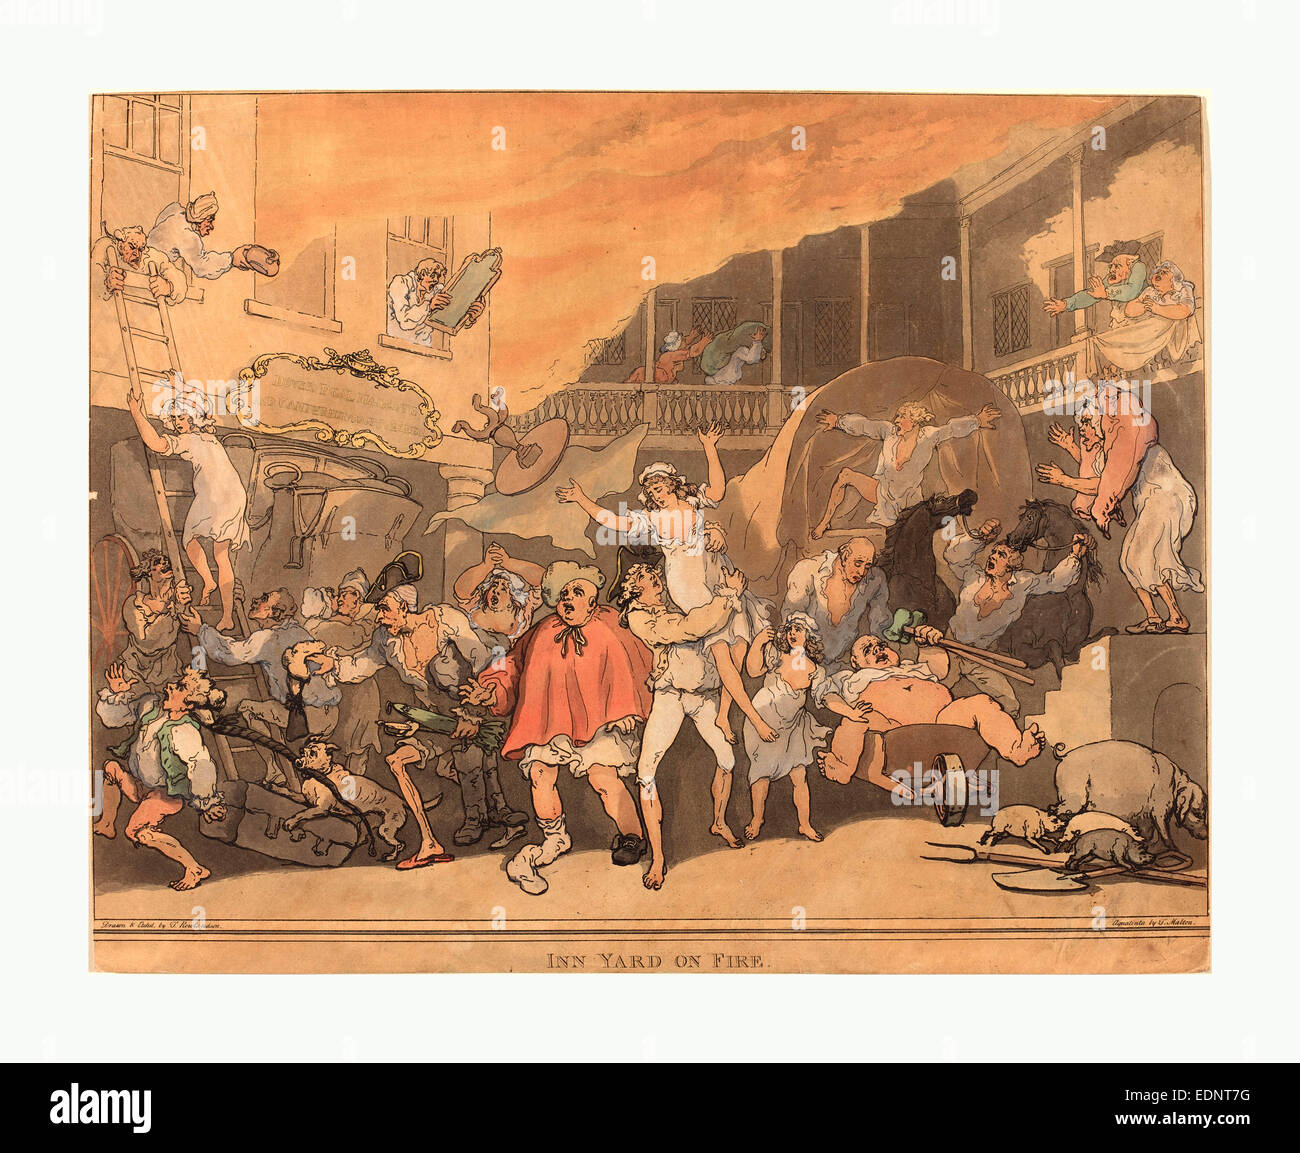 Thomas Rowlandson (British, 1756  1827 ), The Inn Yard on Fire, 1791, hand colored etching and aquatint - Stock Image